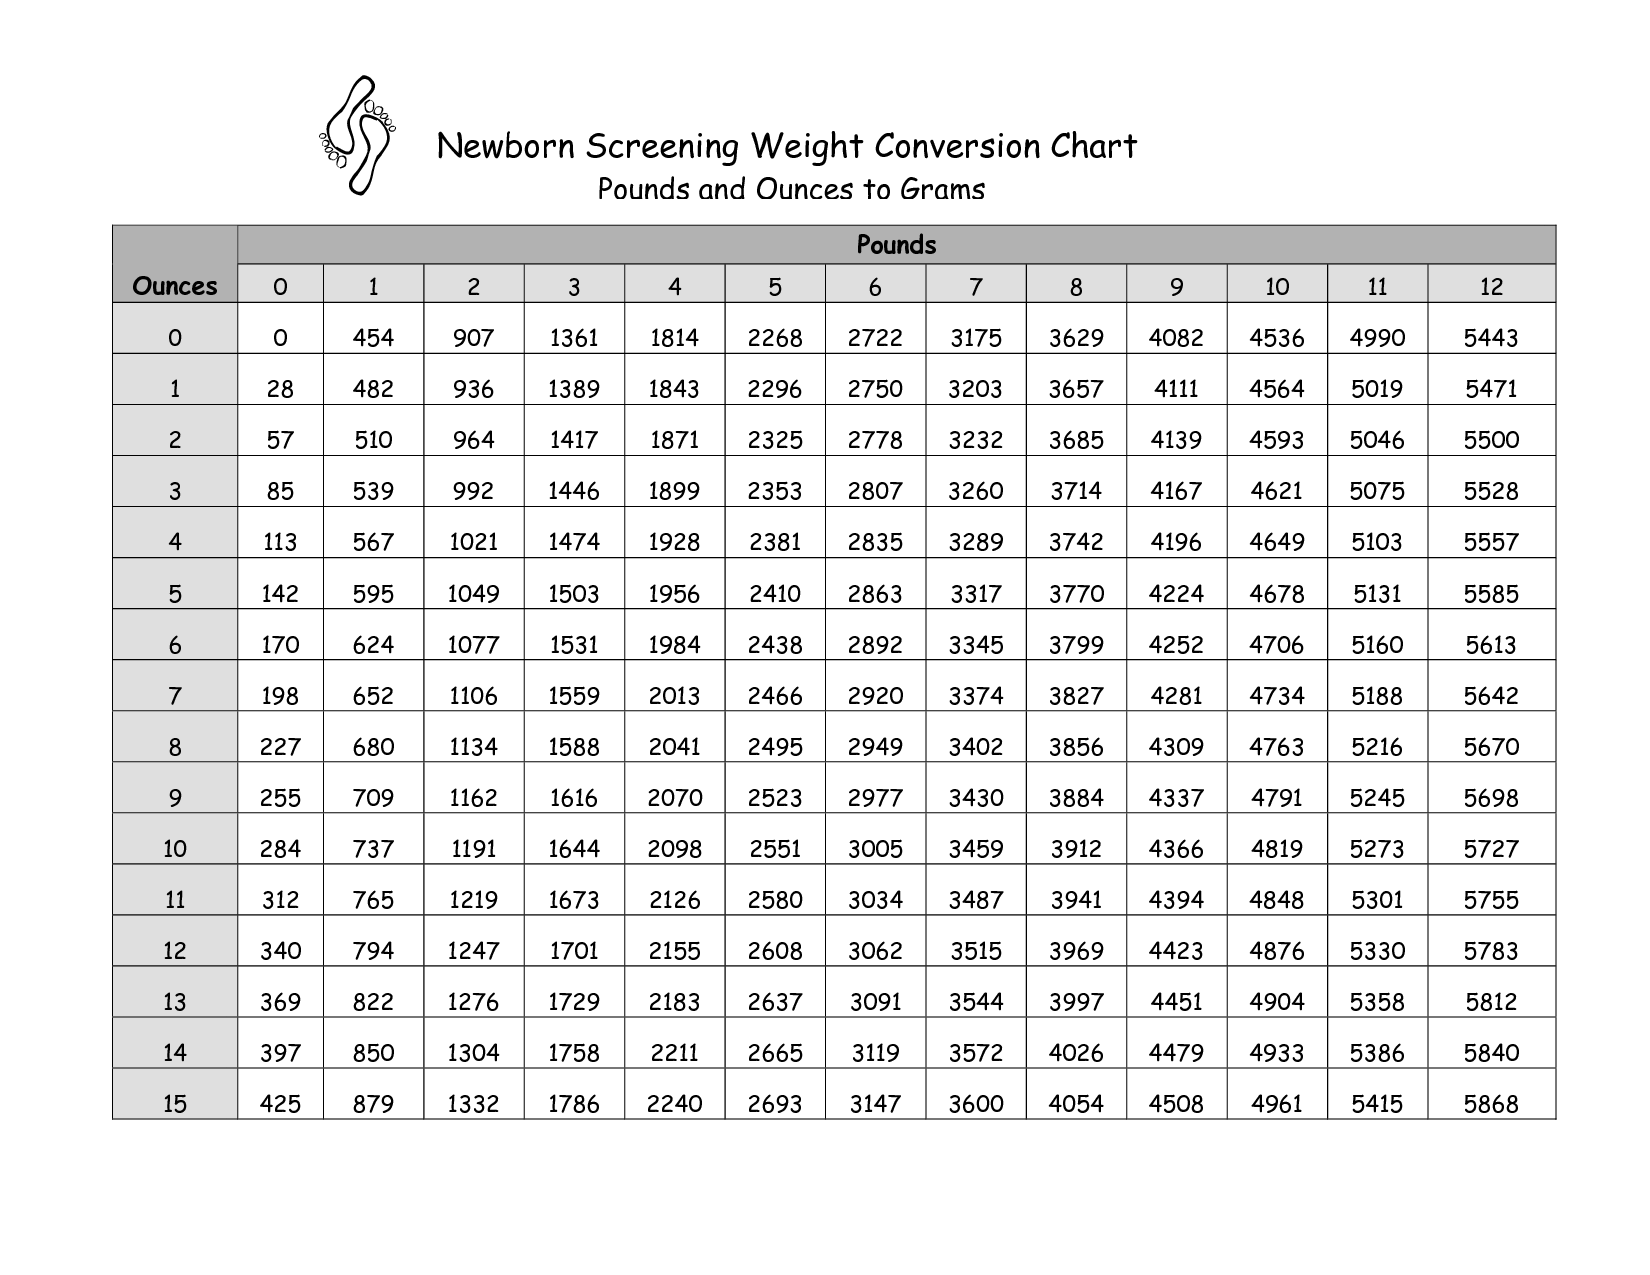 Pounds To Grams Conversion Chart  Birth Assistant Help Sheet